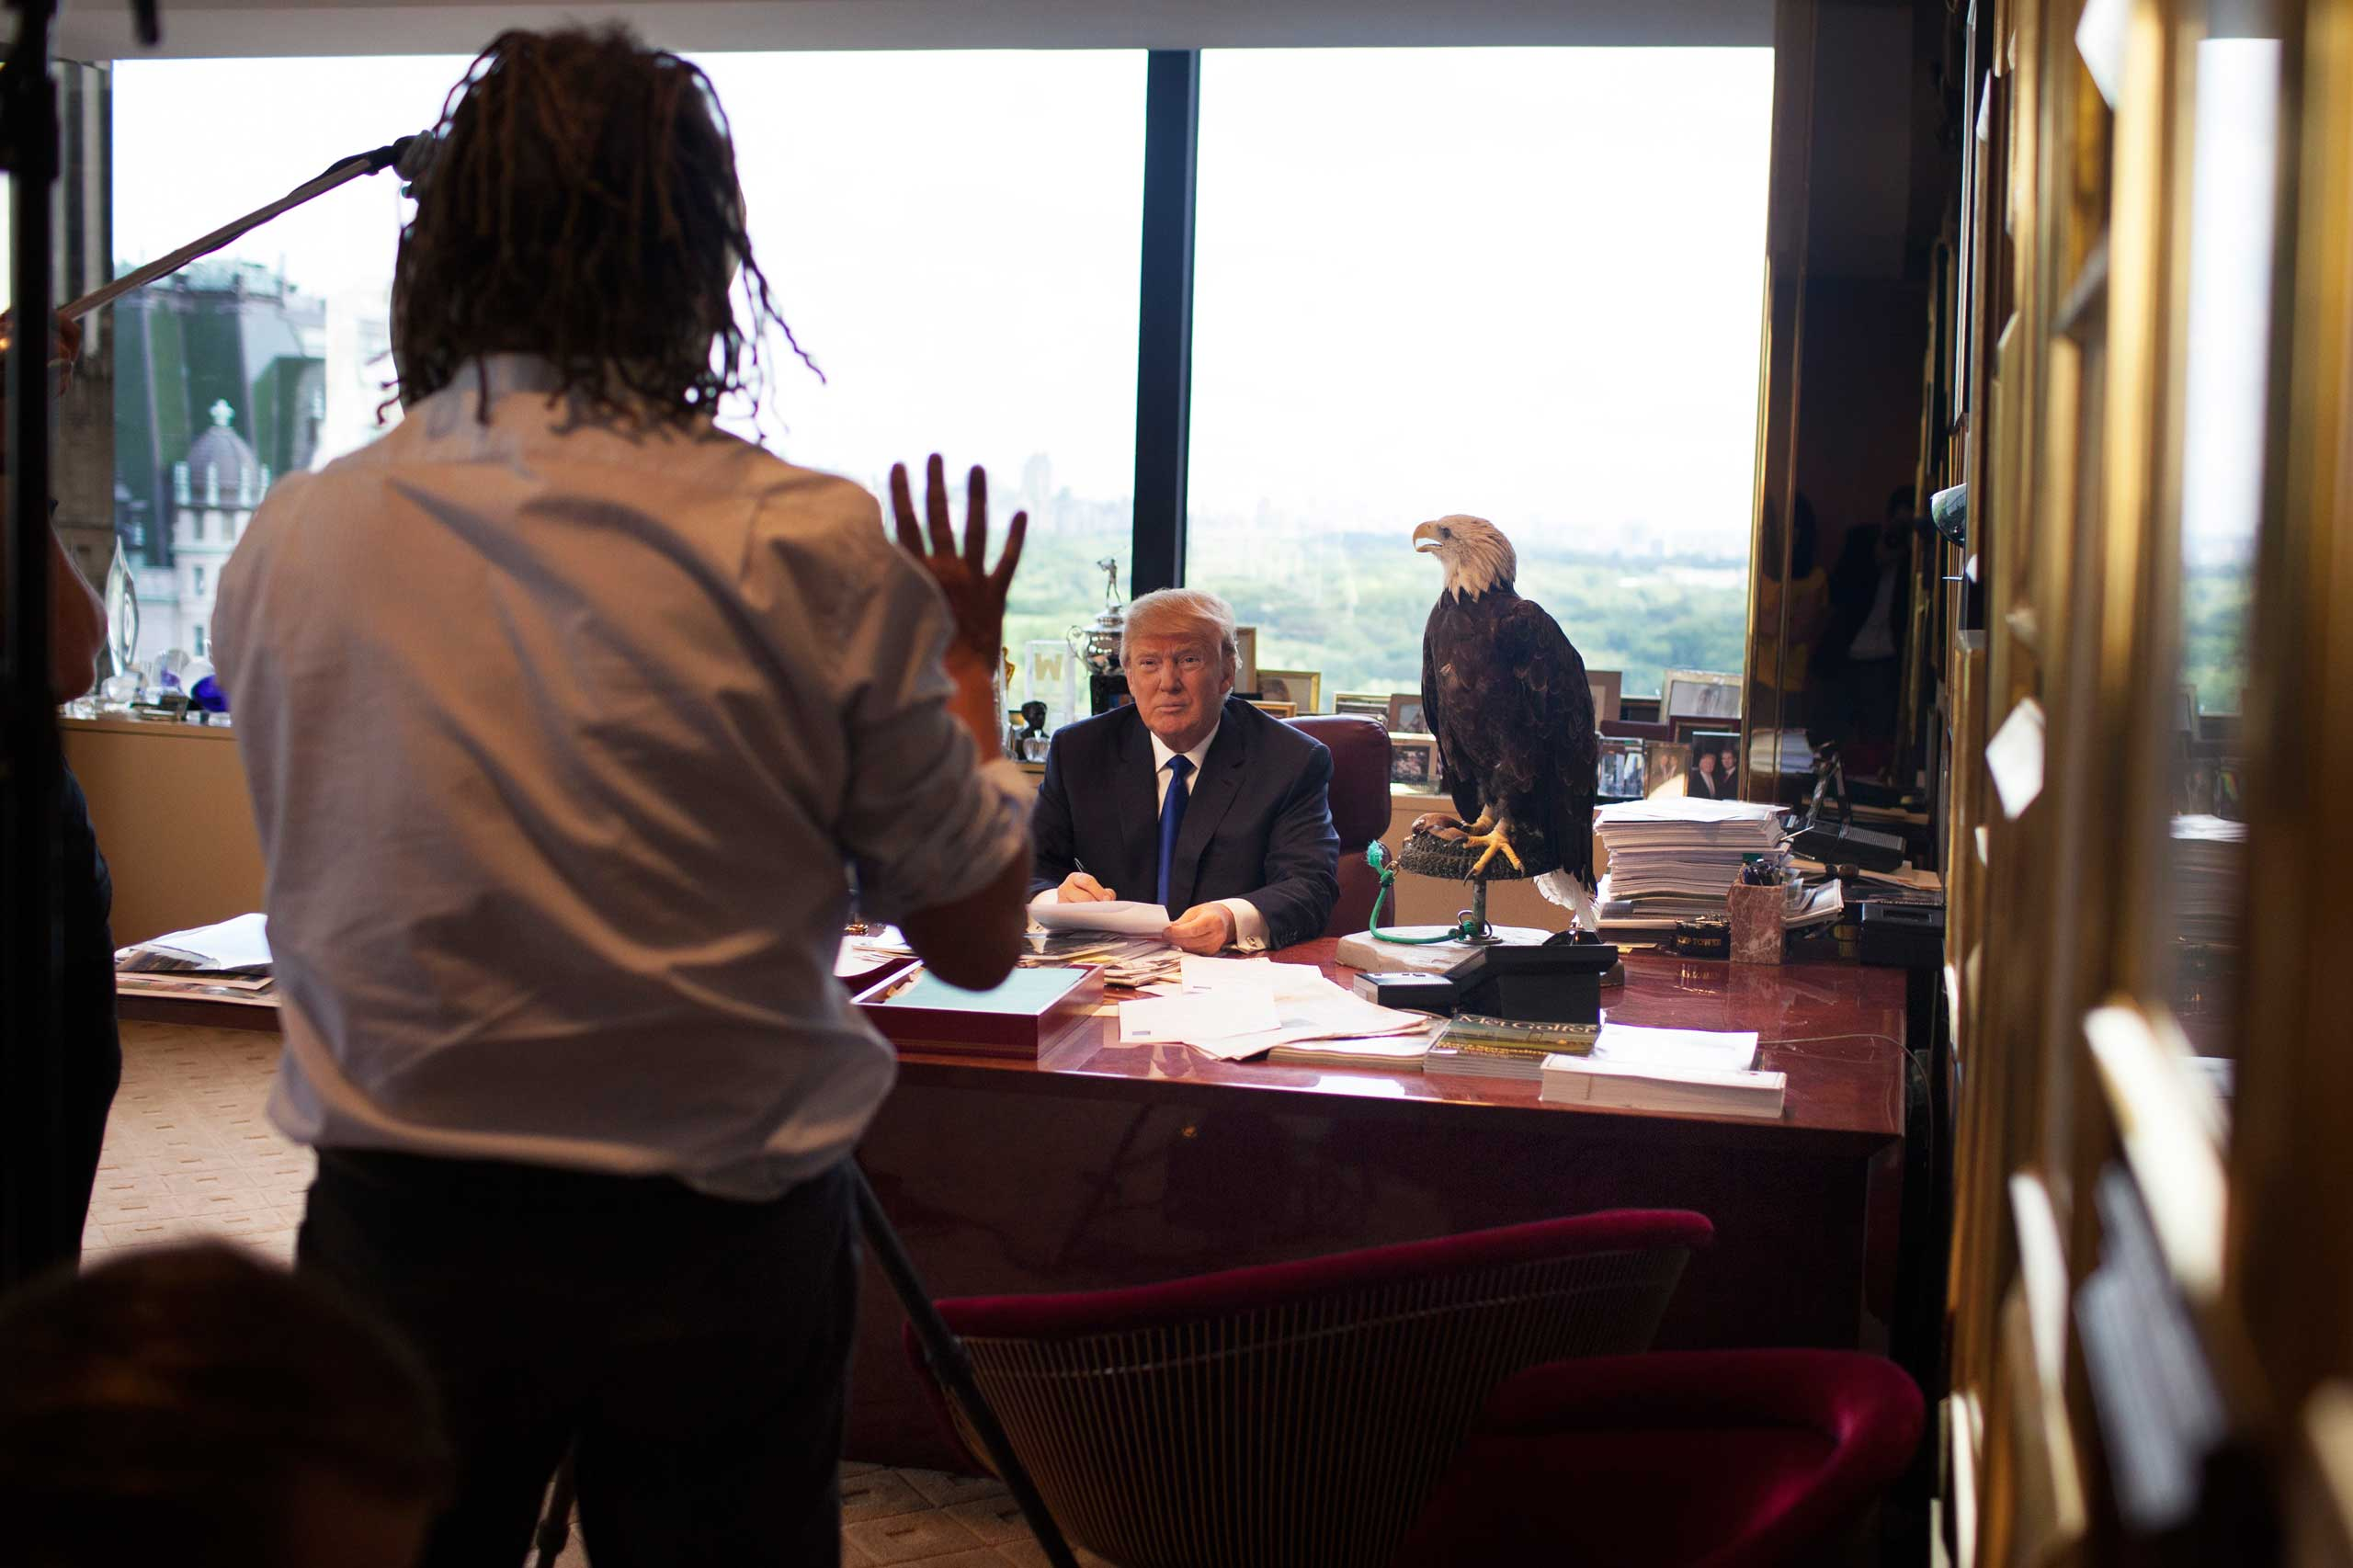 Photographer Martin Schoeller talks with Donald Trump in his office in New York City.